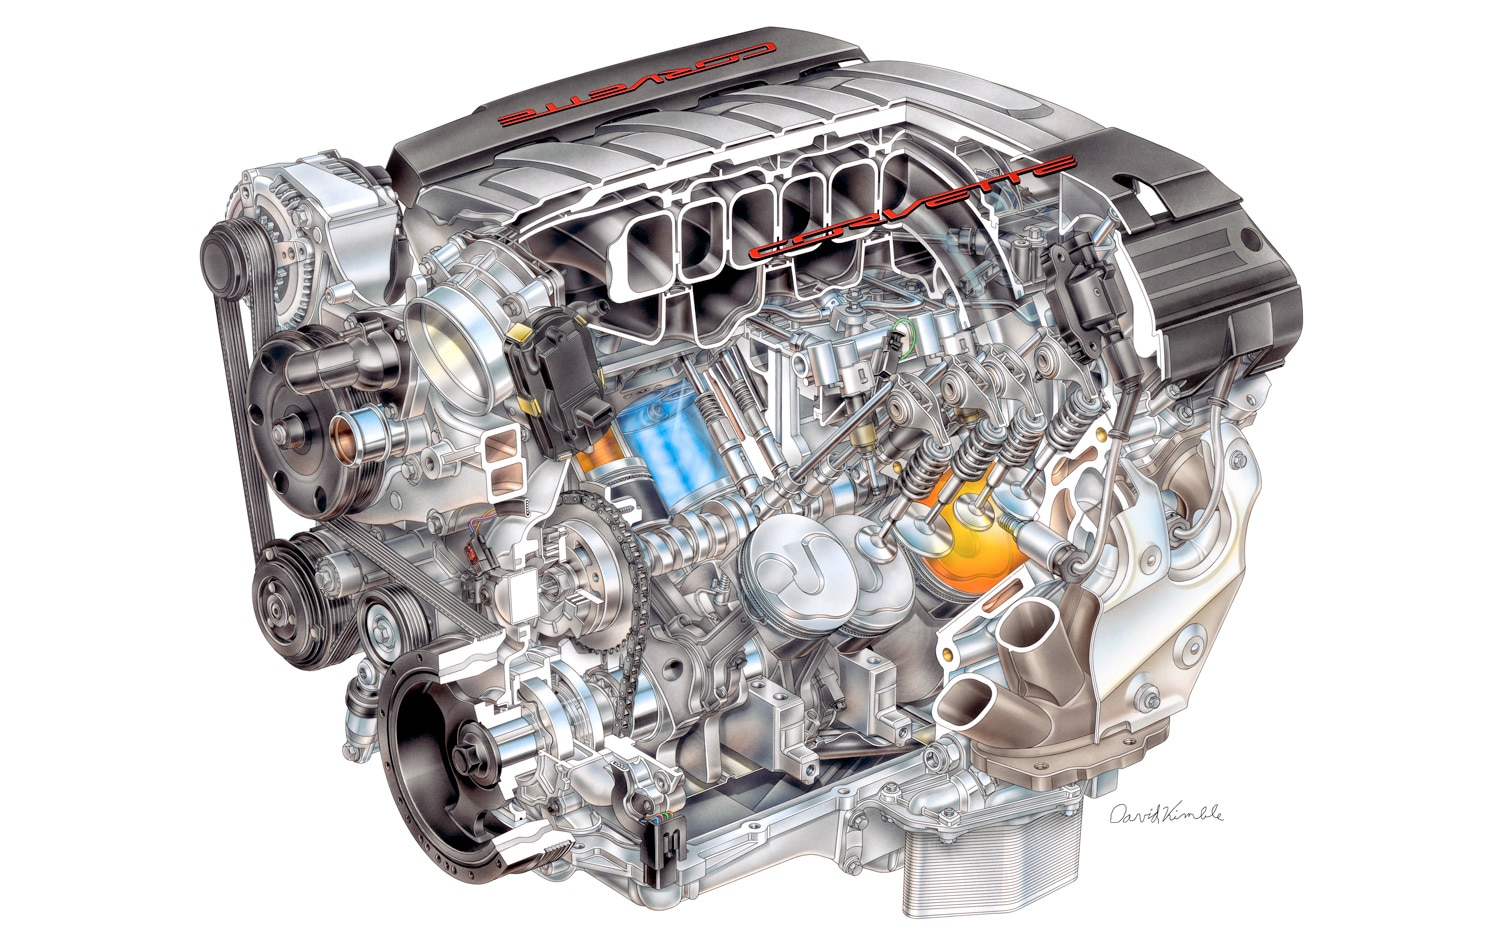 2014 Chevrolet Corvette C7 LT1 V 8 Engine Cutaway View12